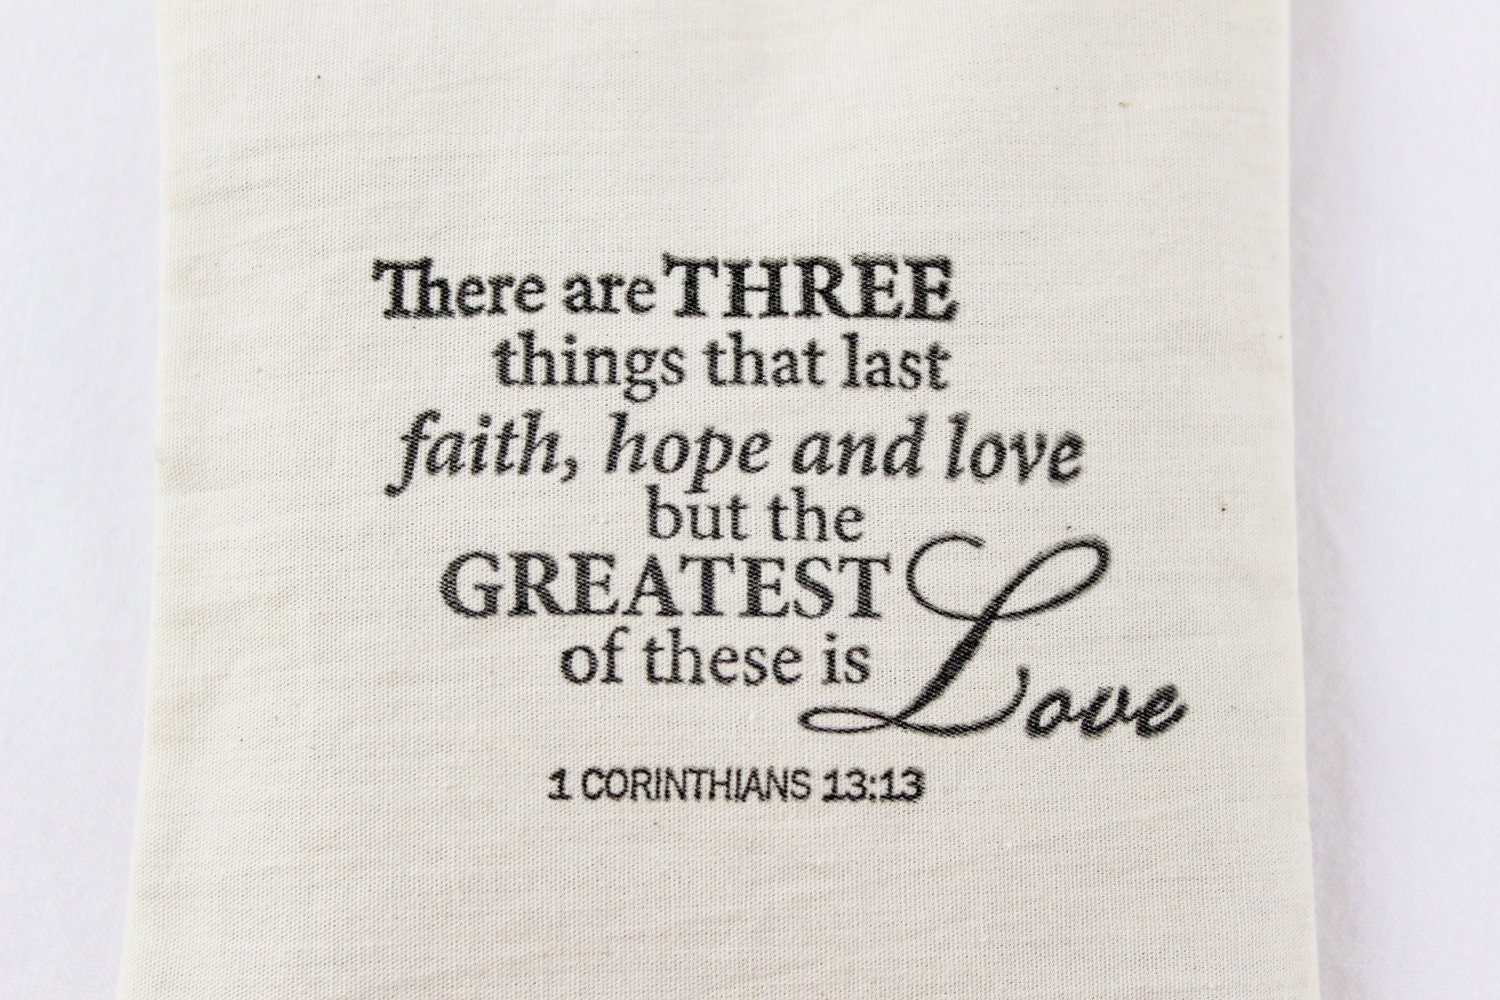 Faith Love Hope Quotes Faith Hope Love Lavender Sachet 1 Corinthians 13 Bible Verse